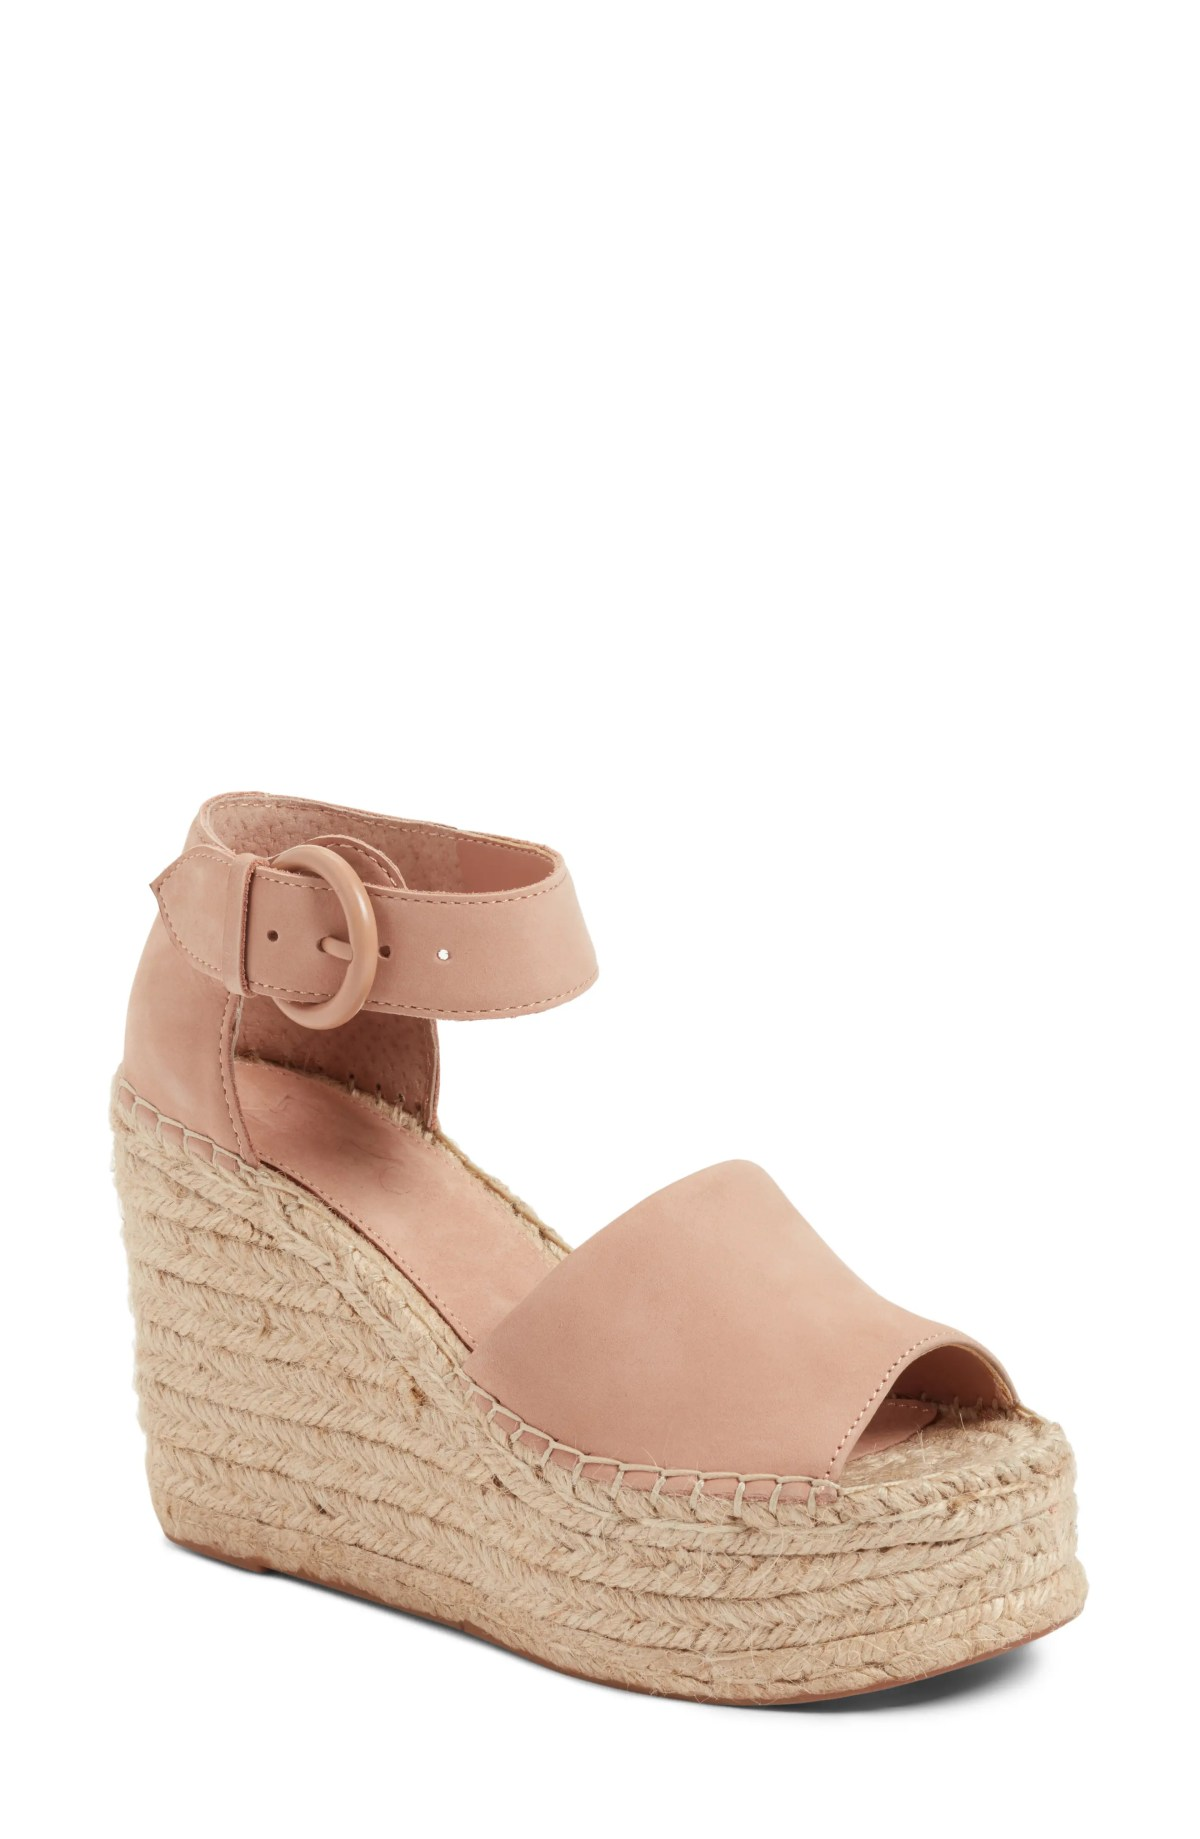 MARC FISHER LTD Alida Espadrille Platform Wedge, Main, color, BLUSH SUEDE